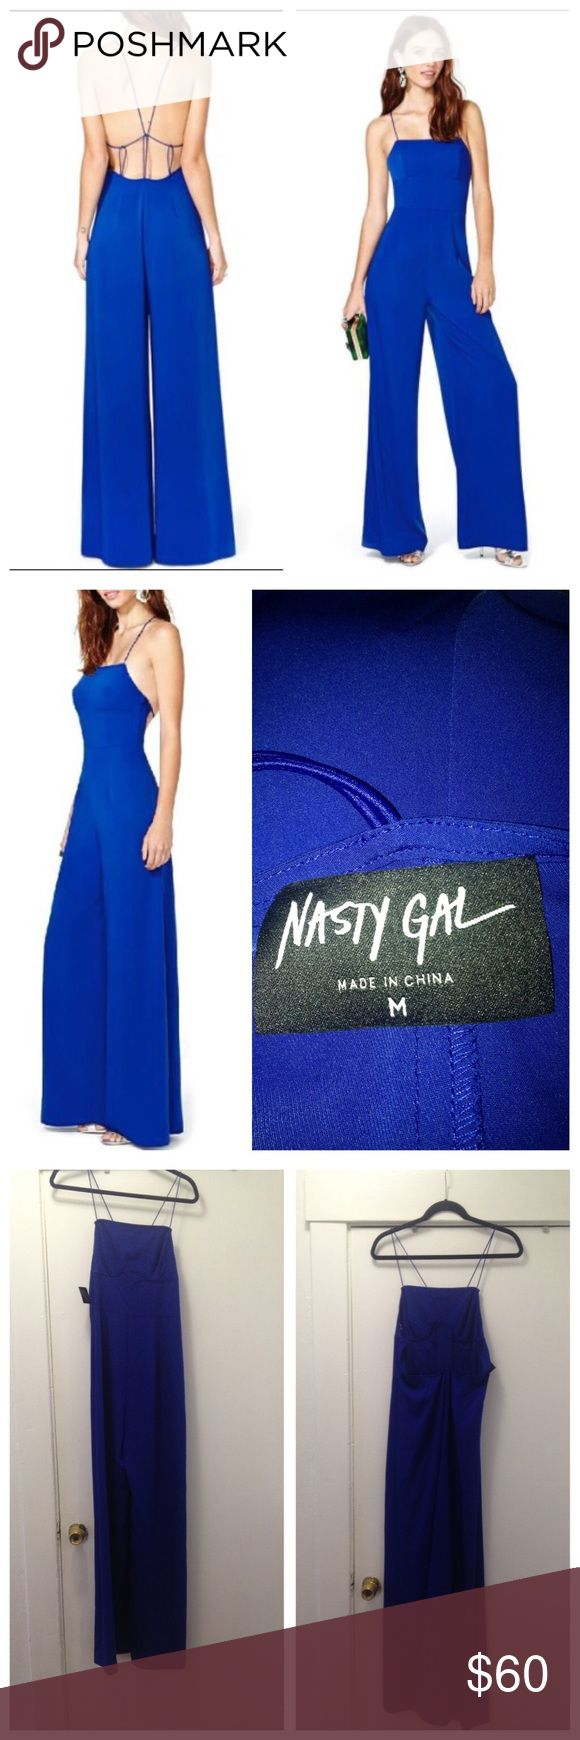 Nasty Gal NWT After midnight wide leg jumpsuit MED Super cute BRAND new with tag attached Nasty Gal After midnight wide leg cobalt blue jumpsuit size medium. Features strappy open back,side hidden zipper, wide legs  and spaghetti straps. So bright!! Size medium. This was purchased before nasty gal Sold!! So this is hard to find now!! Nasty Gal Pants Jumpsuits & Rompers